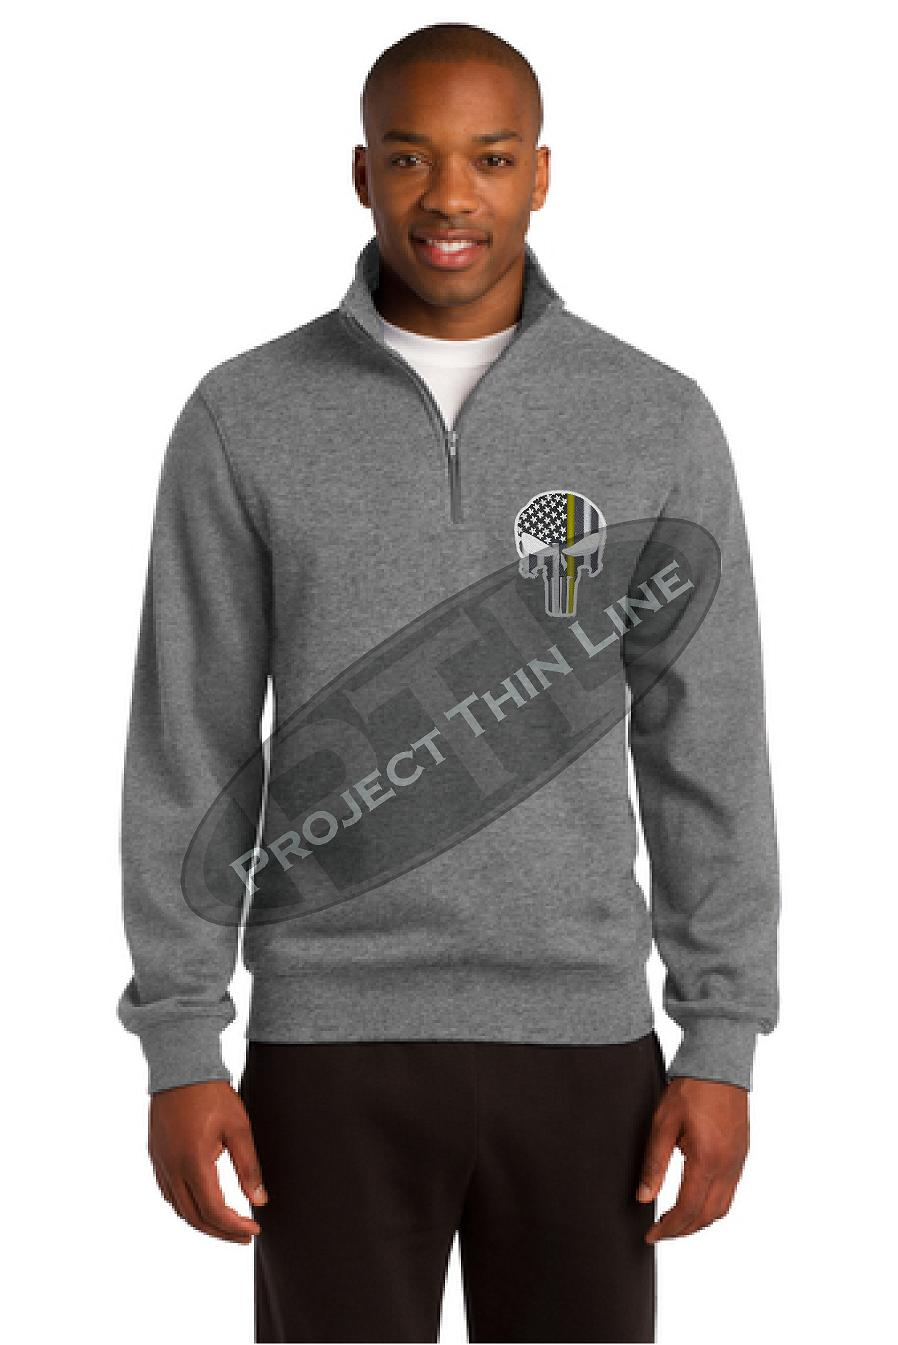 Grey Thin Yellow Line Punisher Skull 1/4 Zip Fleece Sweatshirt